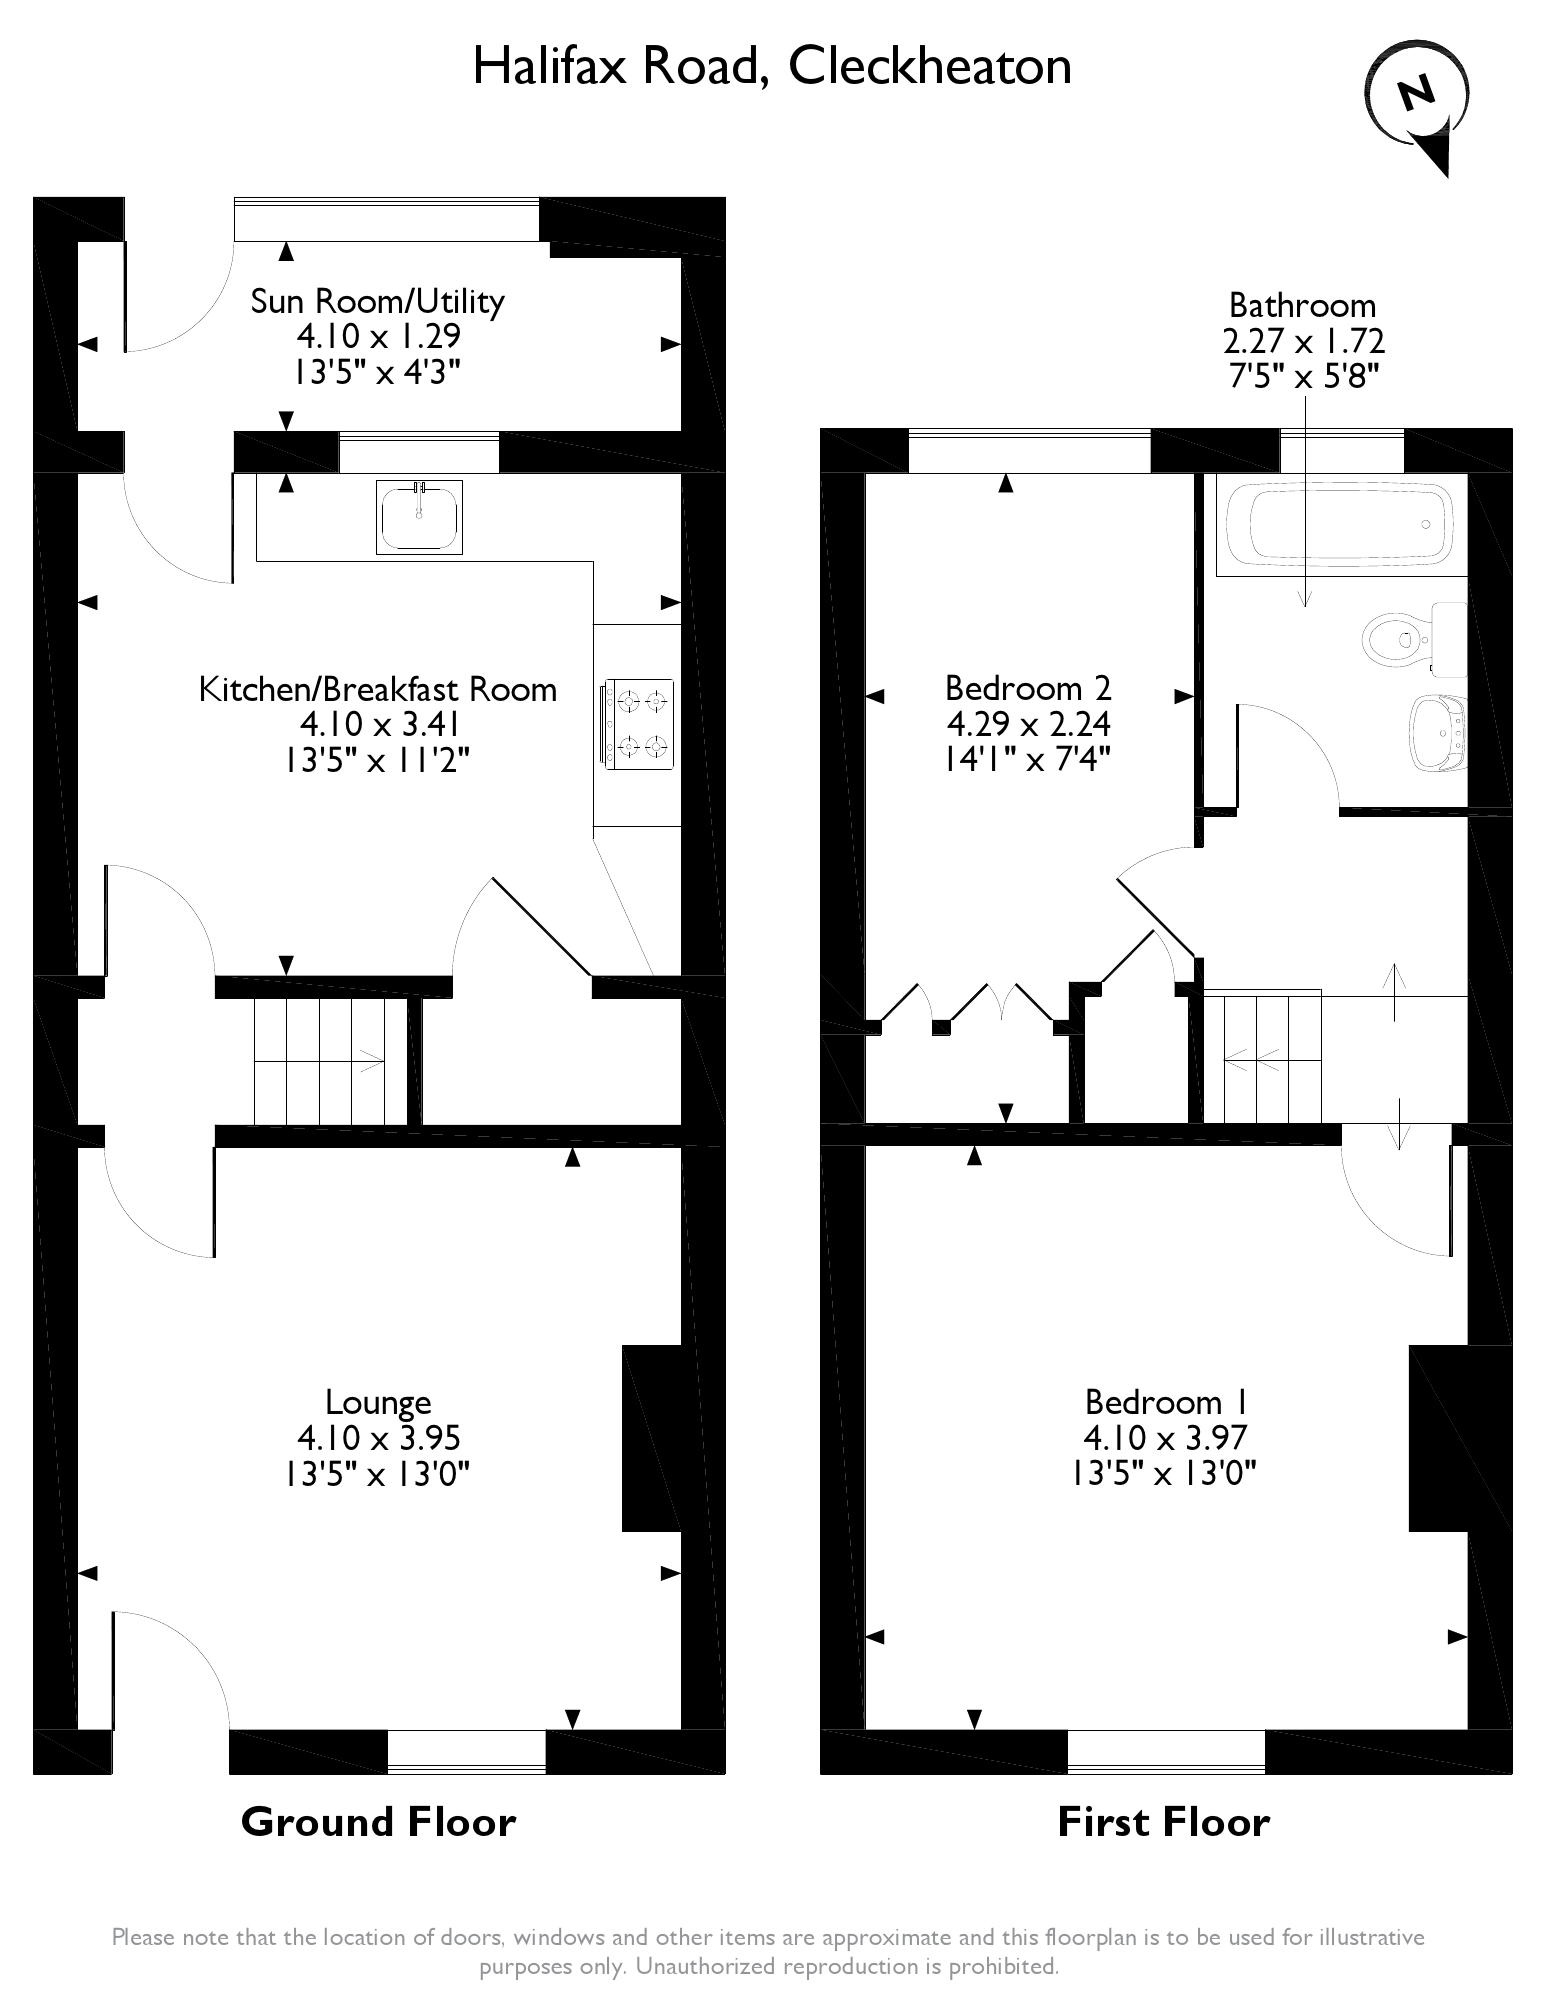 Halifax Road, Cleckheaton, BD19 floor plan